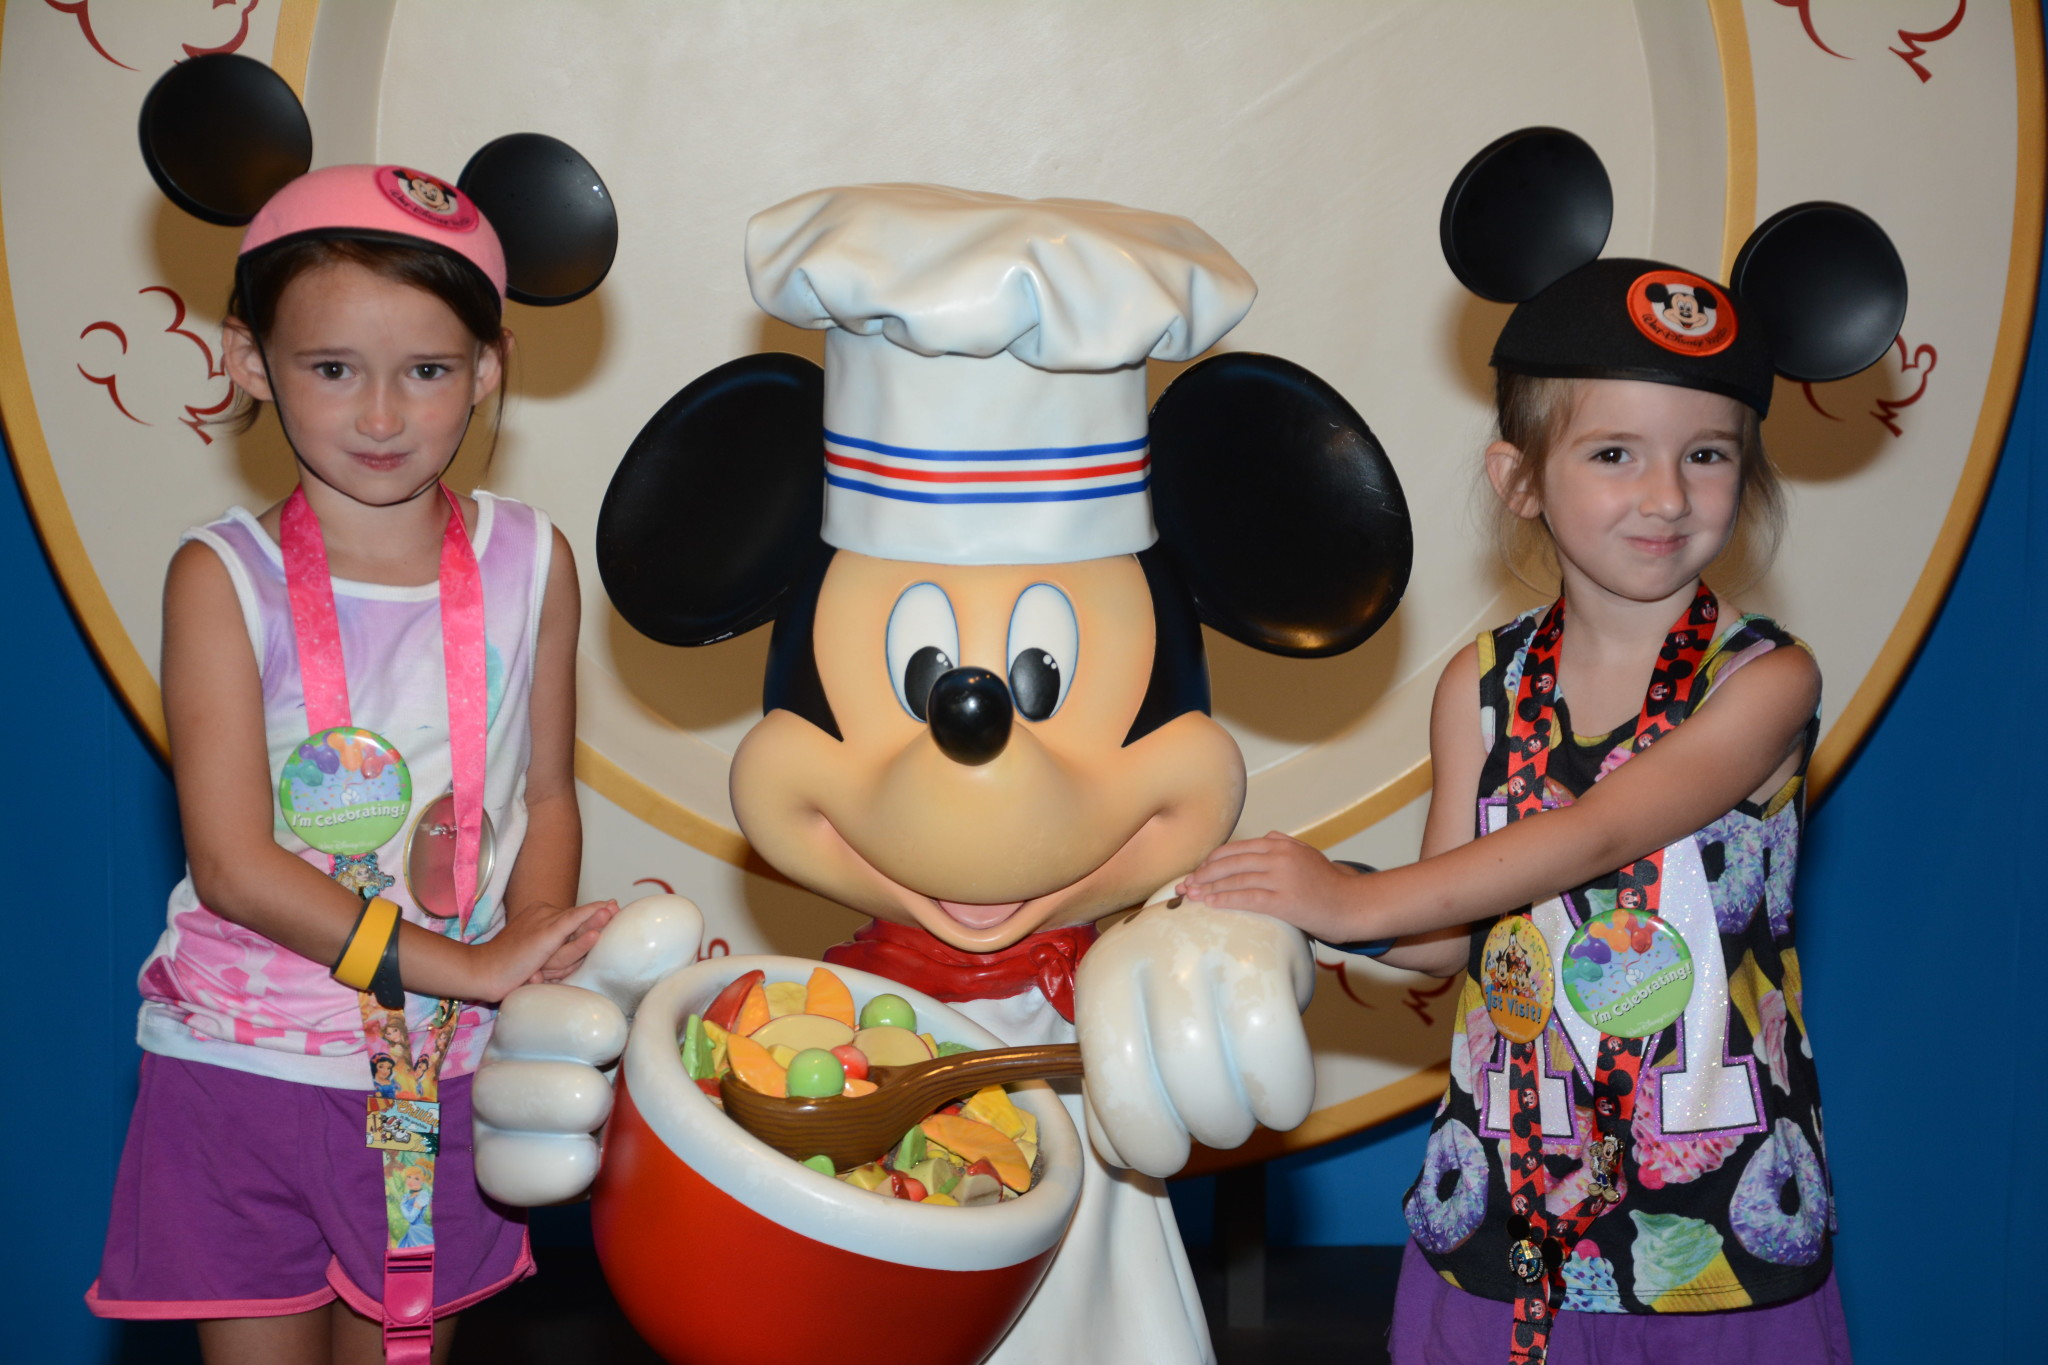 After the meltdown at Chef Mickey's in Disney's Contemporary Resort